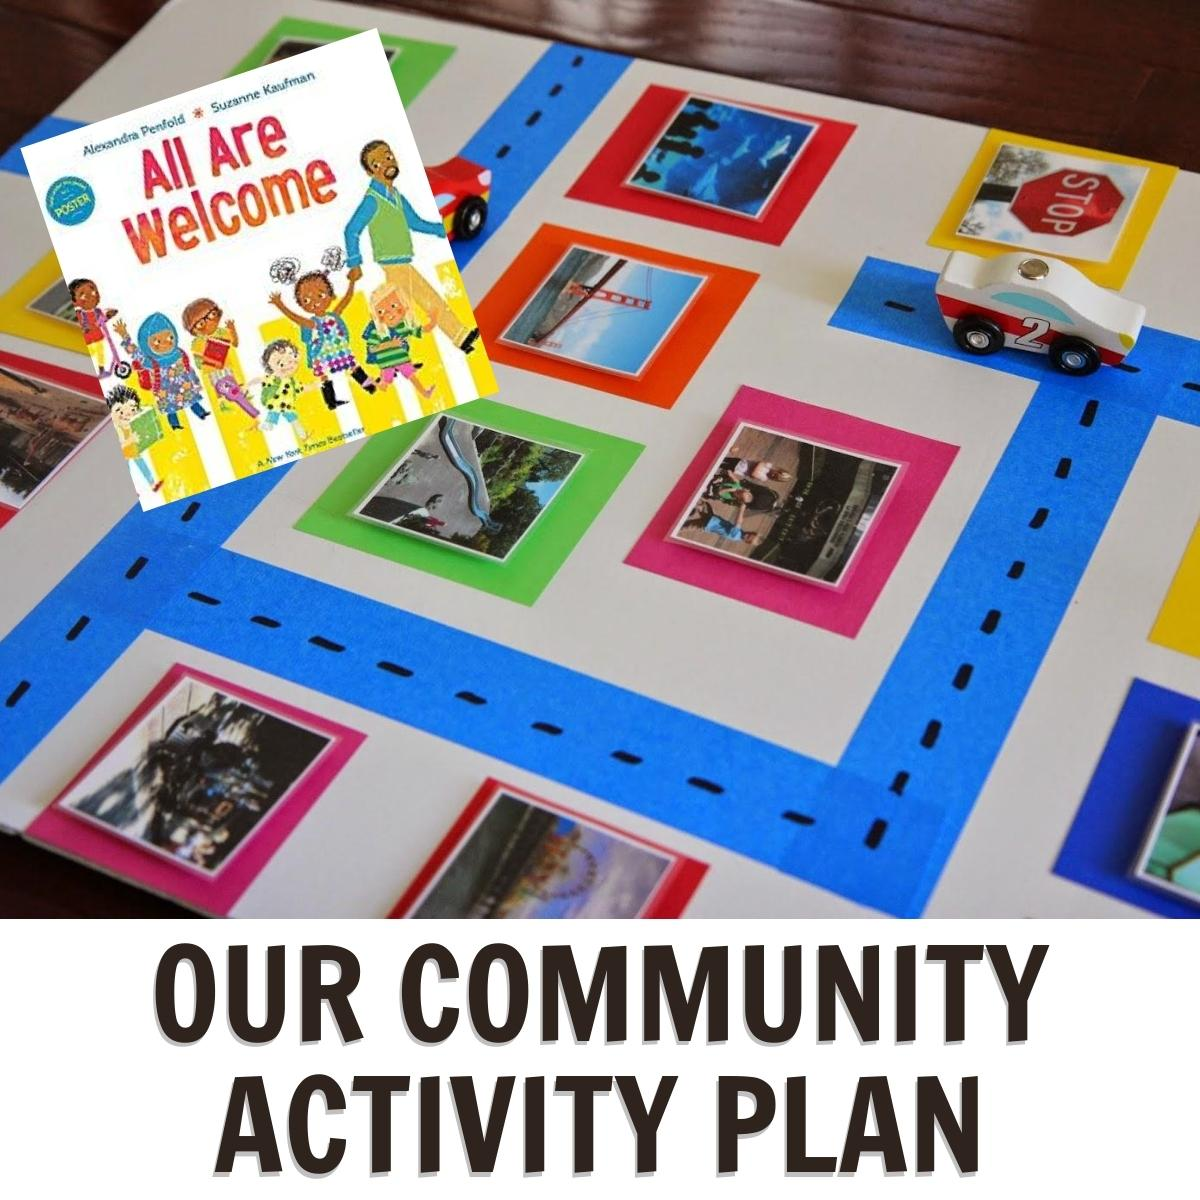 Community Theme for Preschoolers featuring All Are Welcome Here by Alexandra Penfold